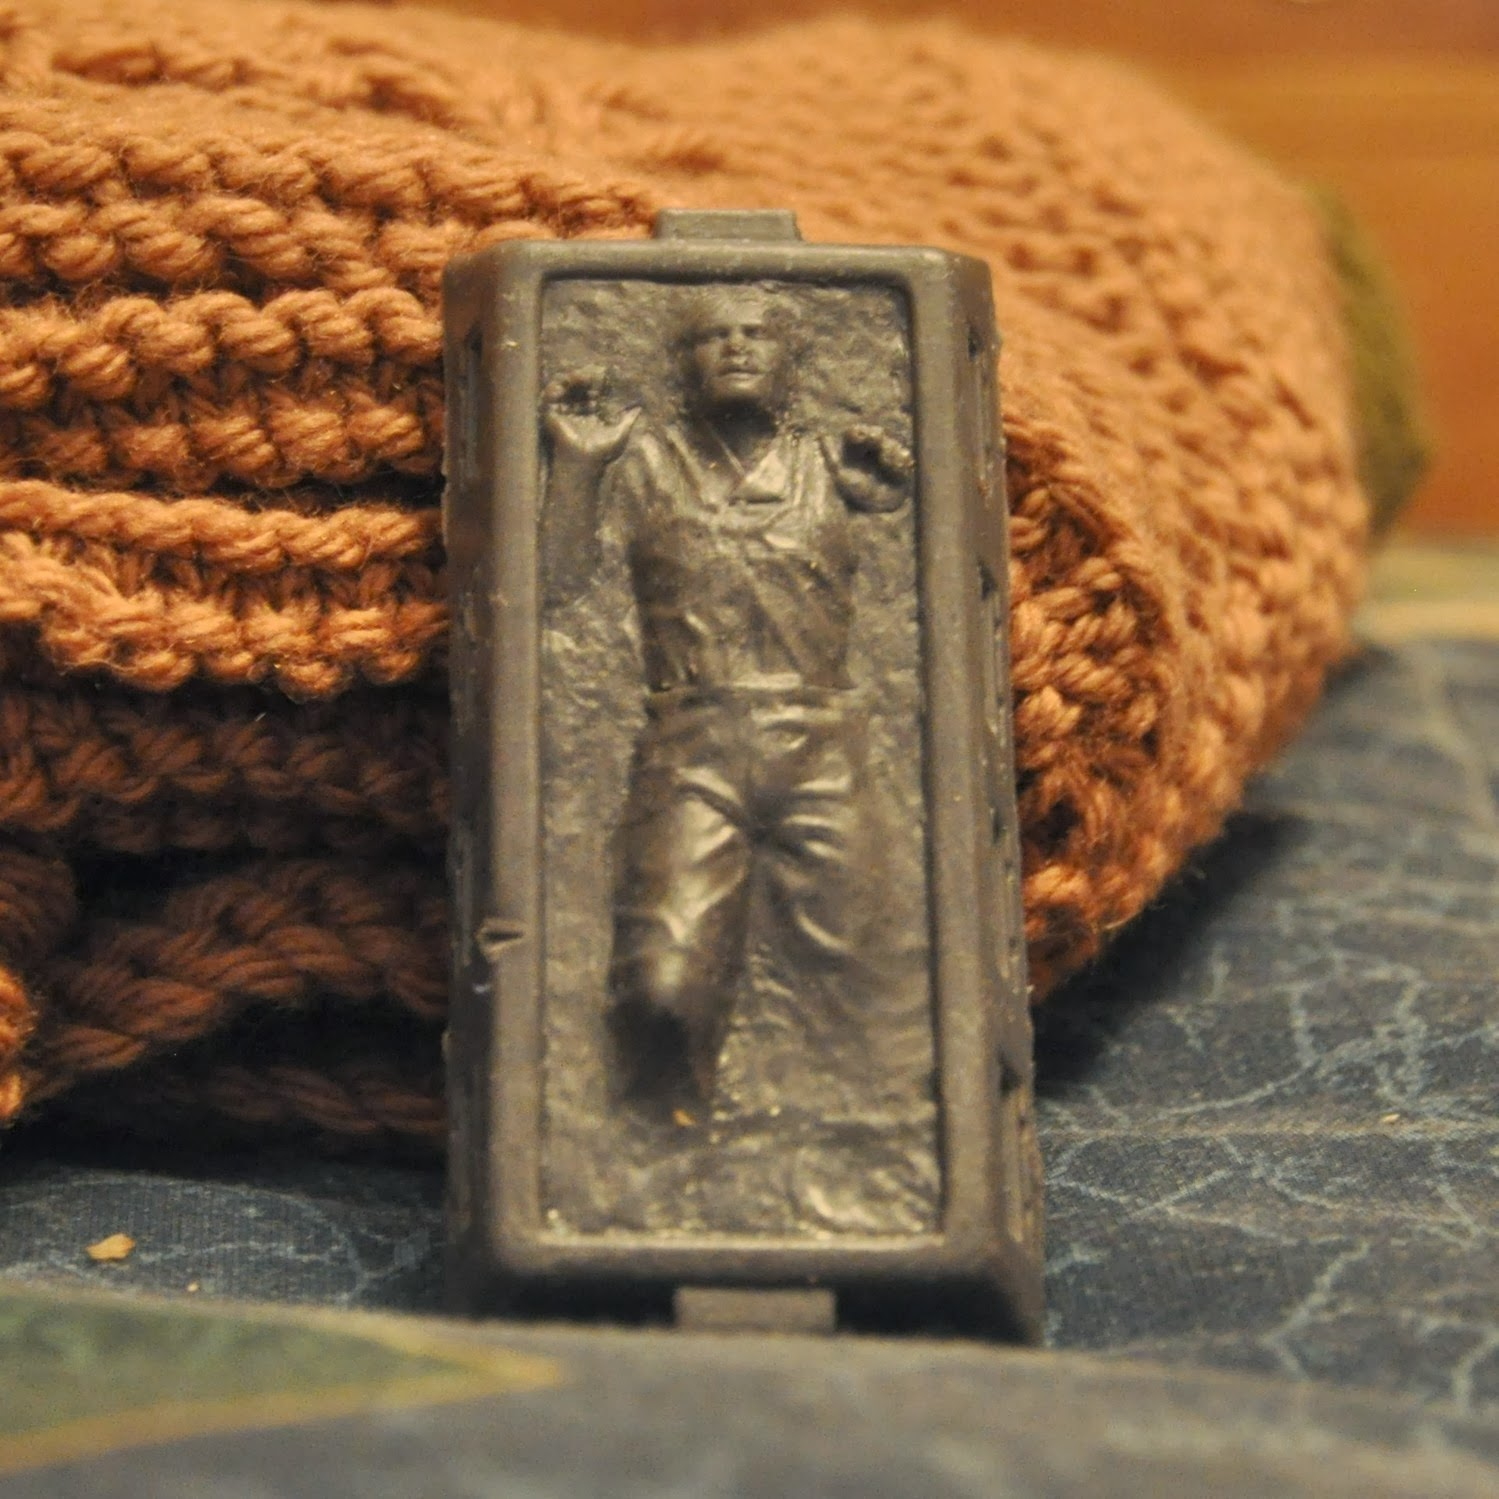 https://www.etsy.com/listing/62733971/han-solo-in-carbonite-all-natural-nearly